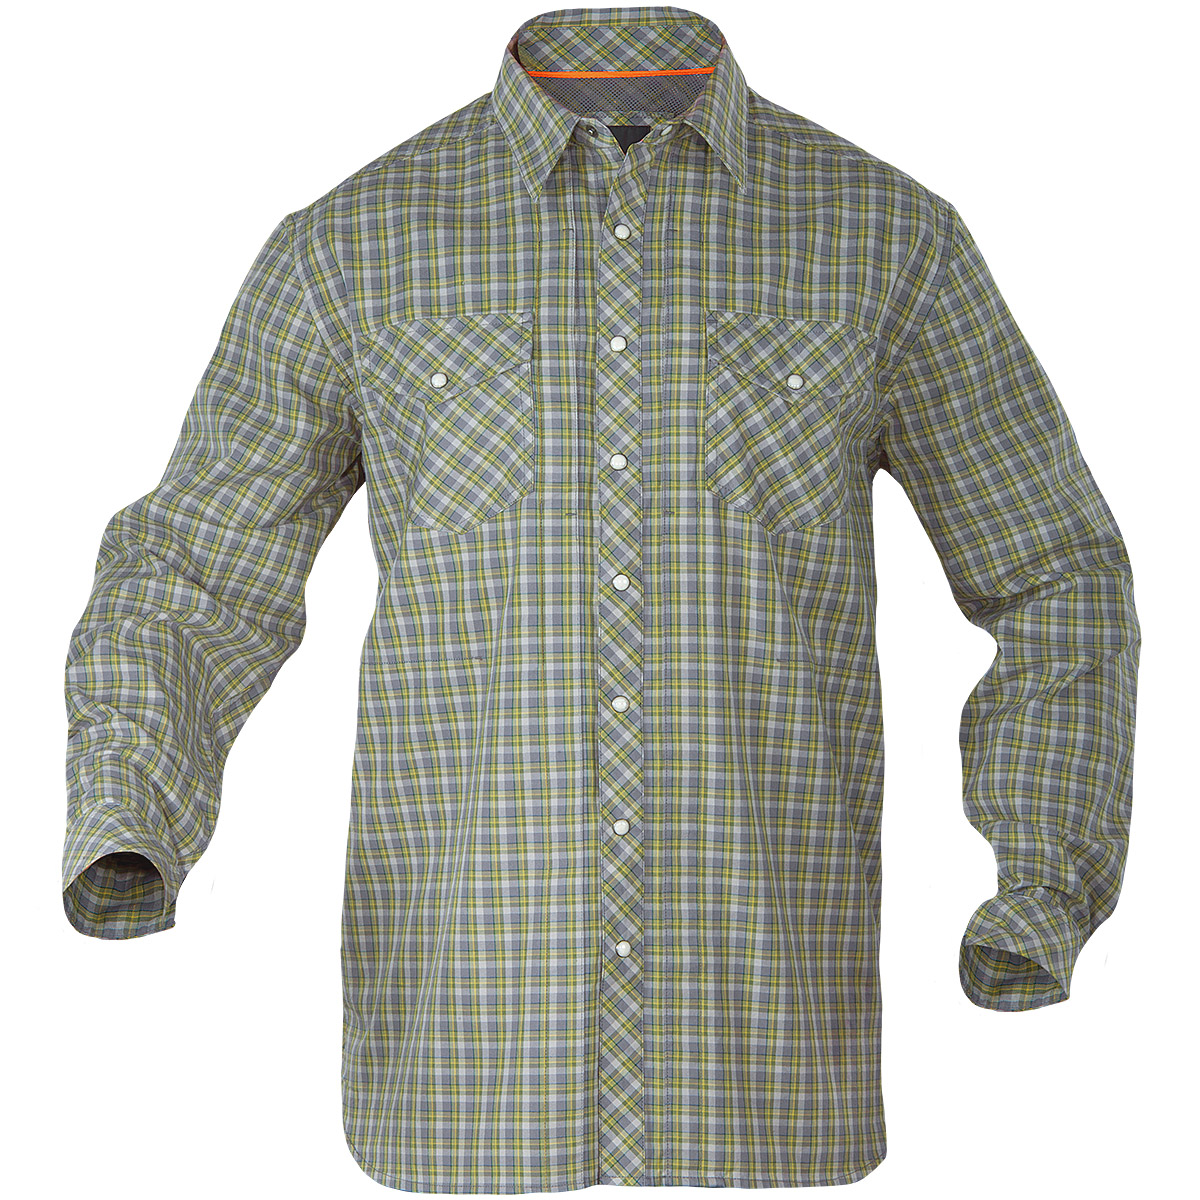 Free shipping BOTH ways on mens flannel lined long sleeve shirt, from our vast selection of styles. Fast delivery, and 24/7/ real-person service with a smile. Click or call